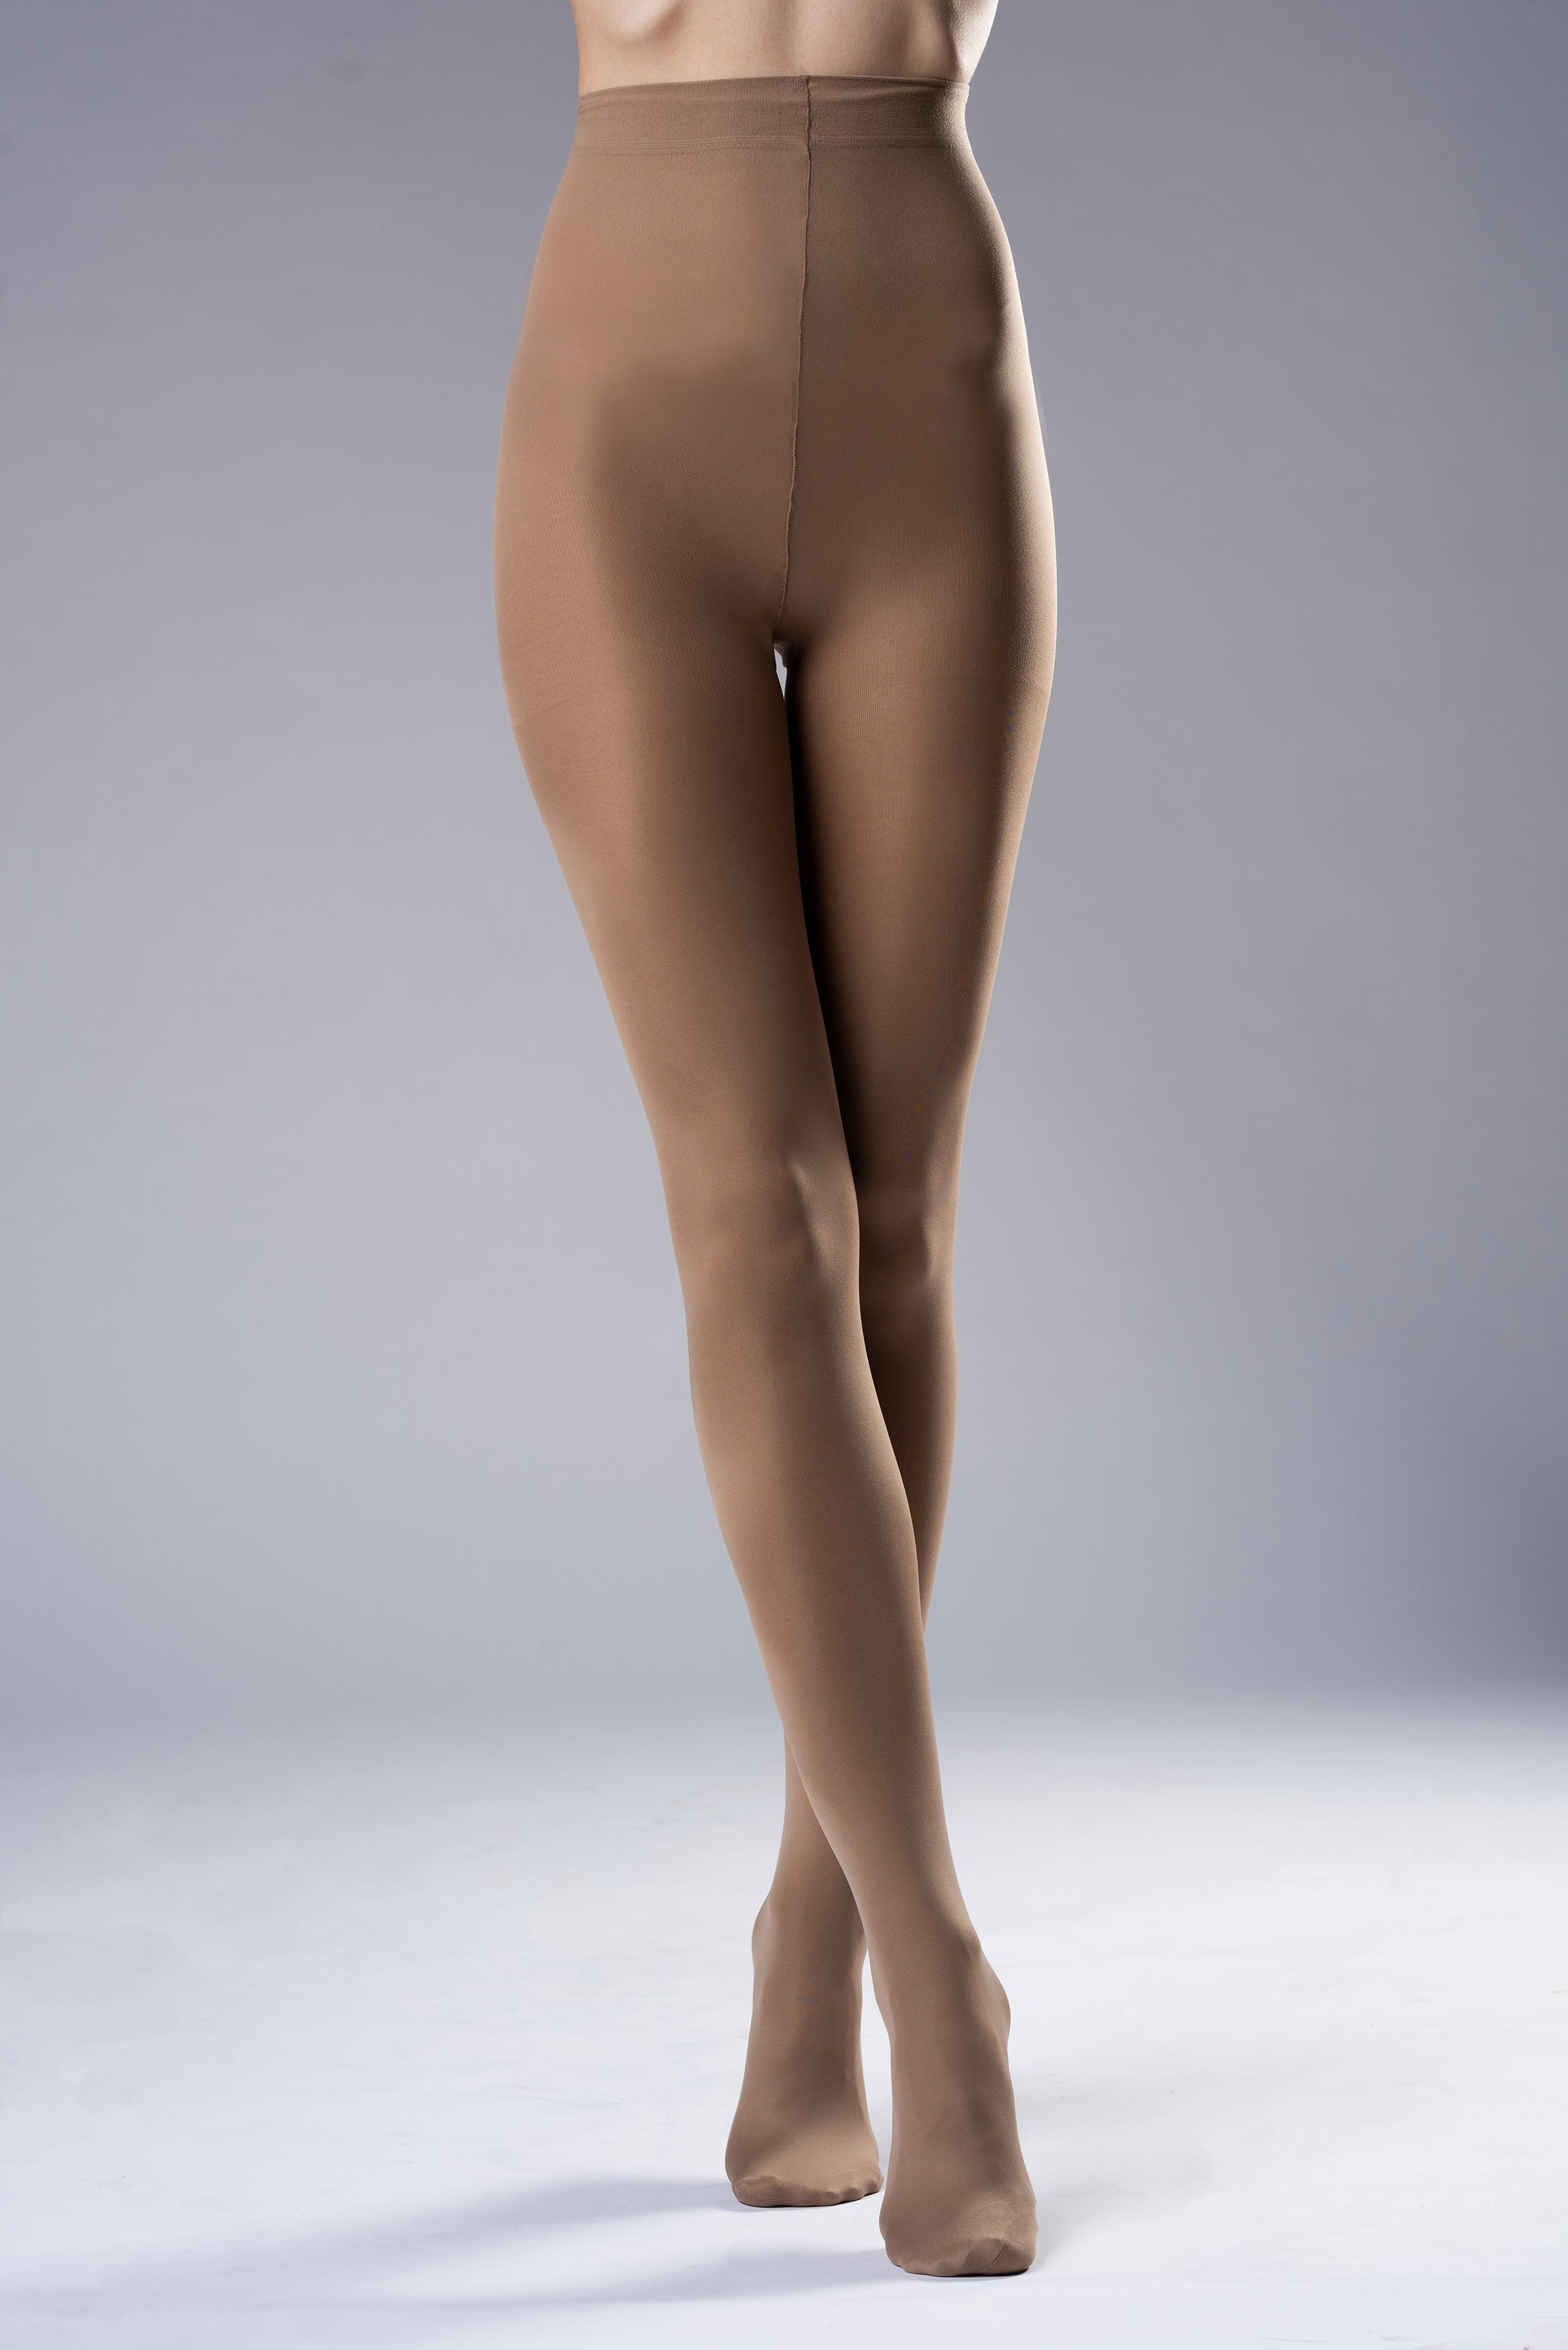 Bio Degradable Tights - Clay (40 DEN) - FourTwentyTwo USA